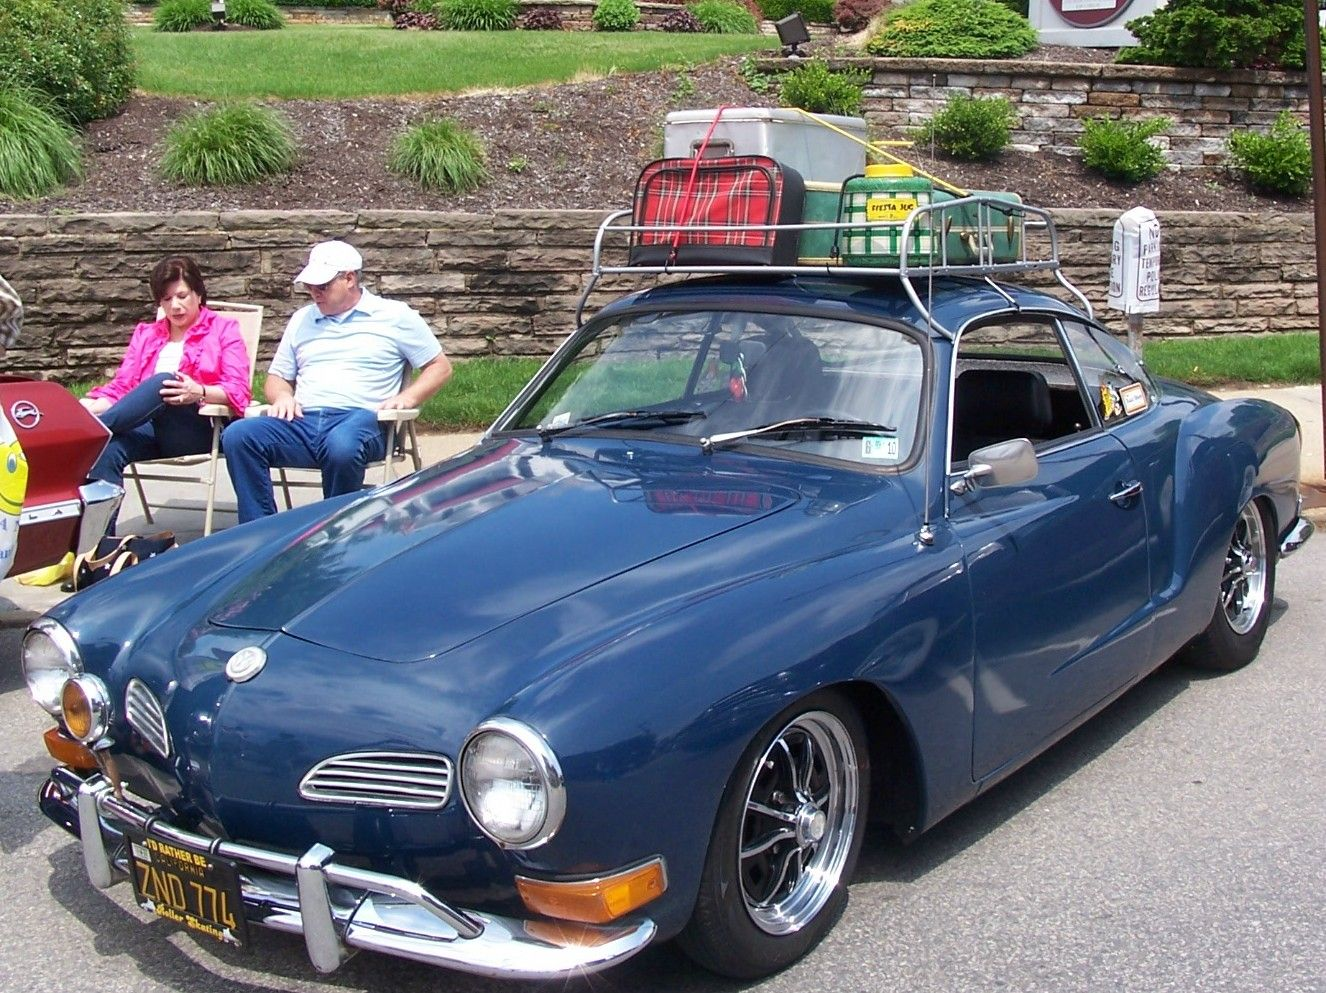 I always wanted a Carman Ghia in high school.  My son totally rebuilt one and took me for a ride in it.